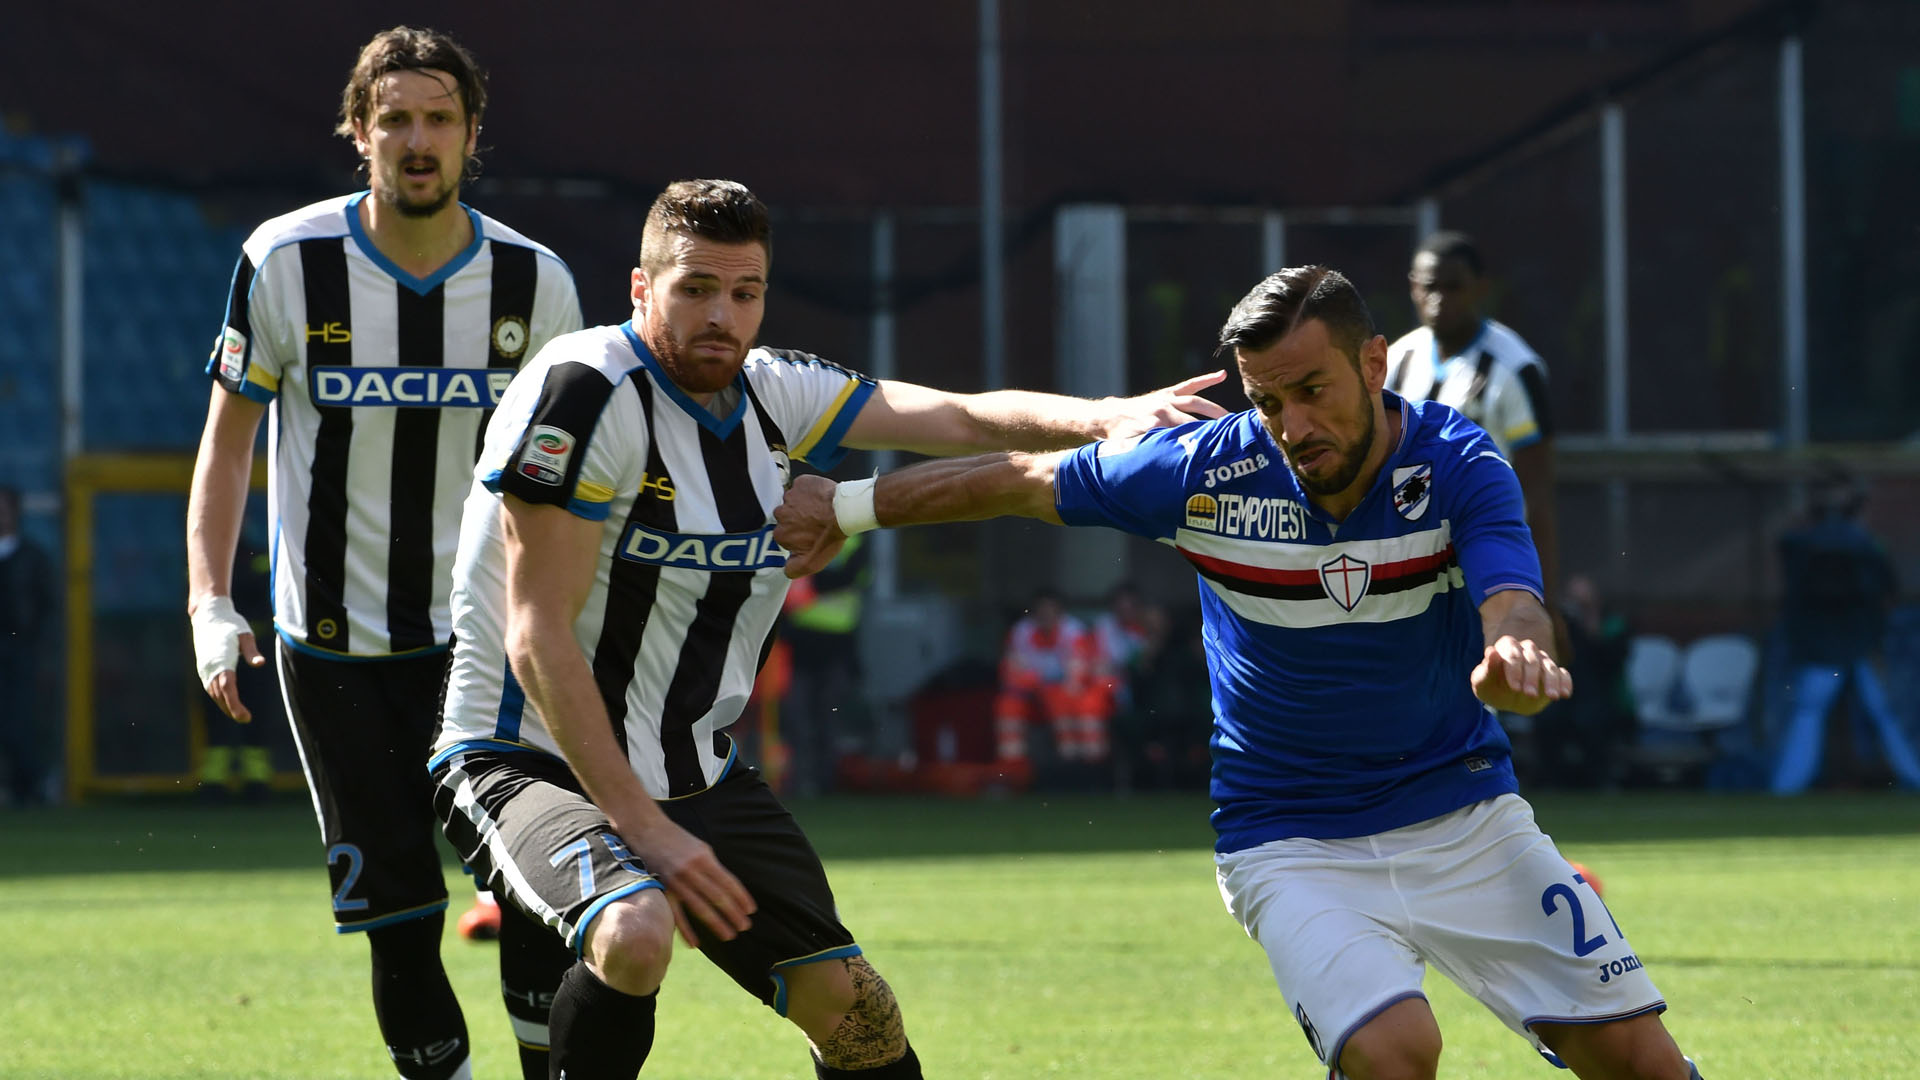 Video: Sampdoria vs Udinese